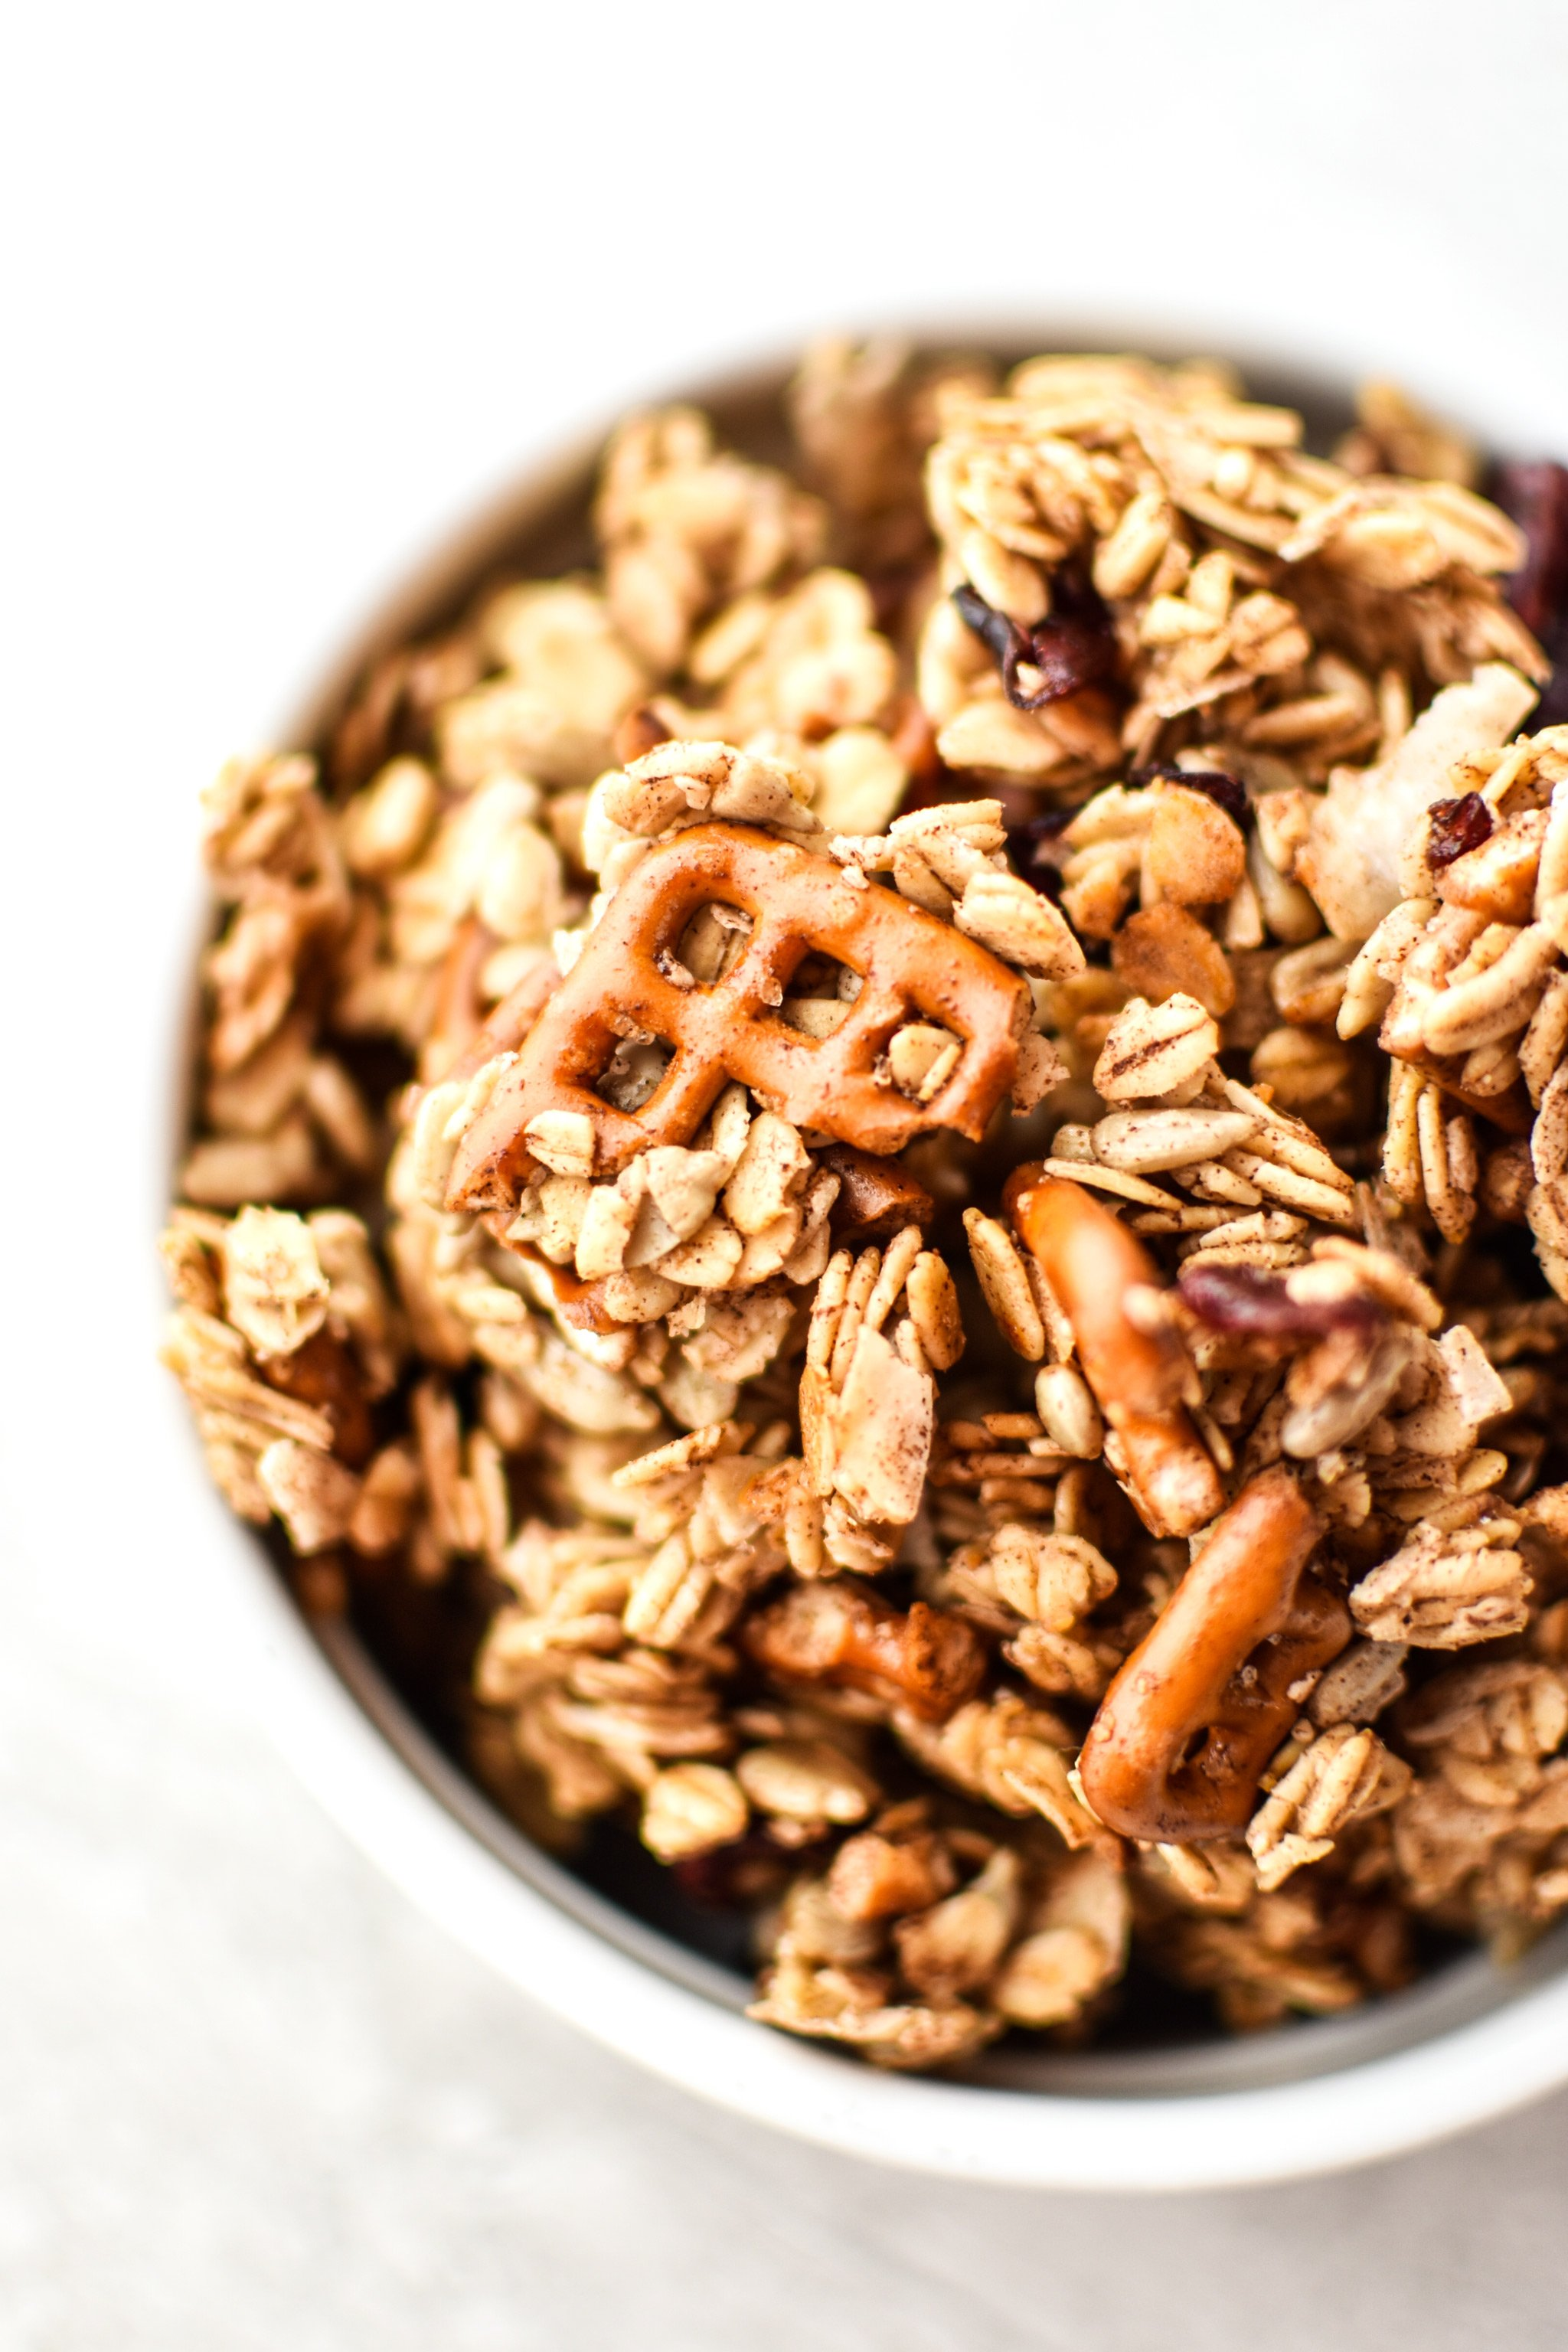 A bowl of super clumpy nut free snack mix granola.